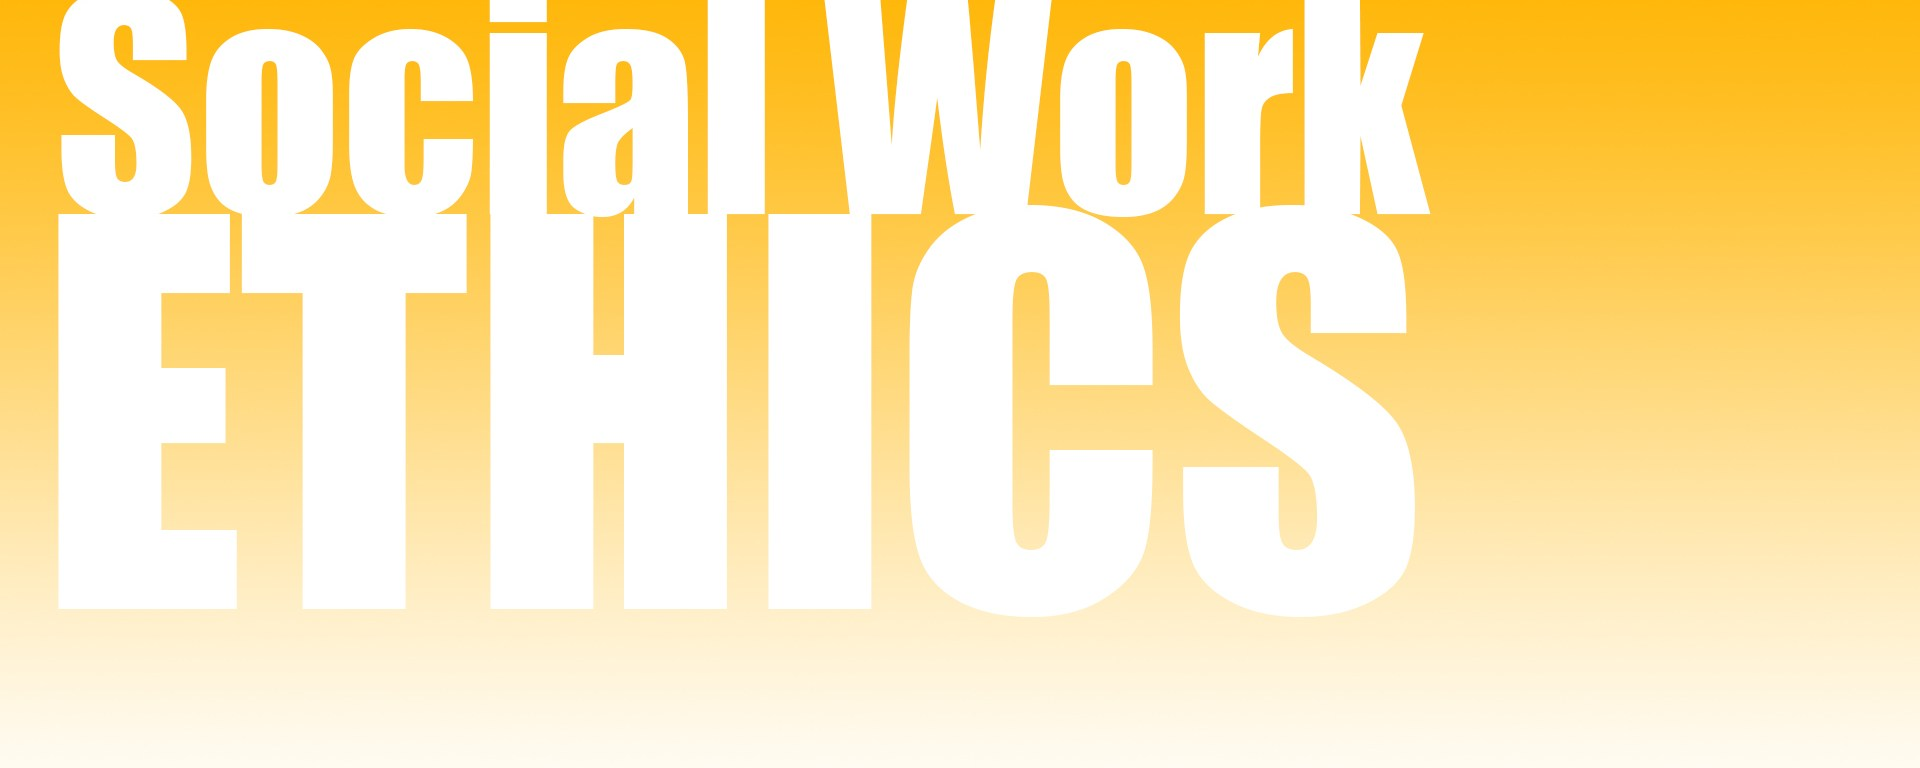 social work values and ethics college the social work values and ethics that will forward your career